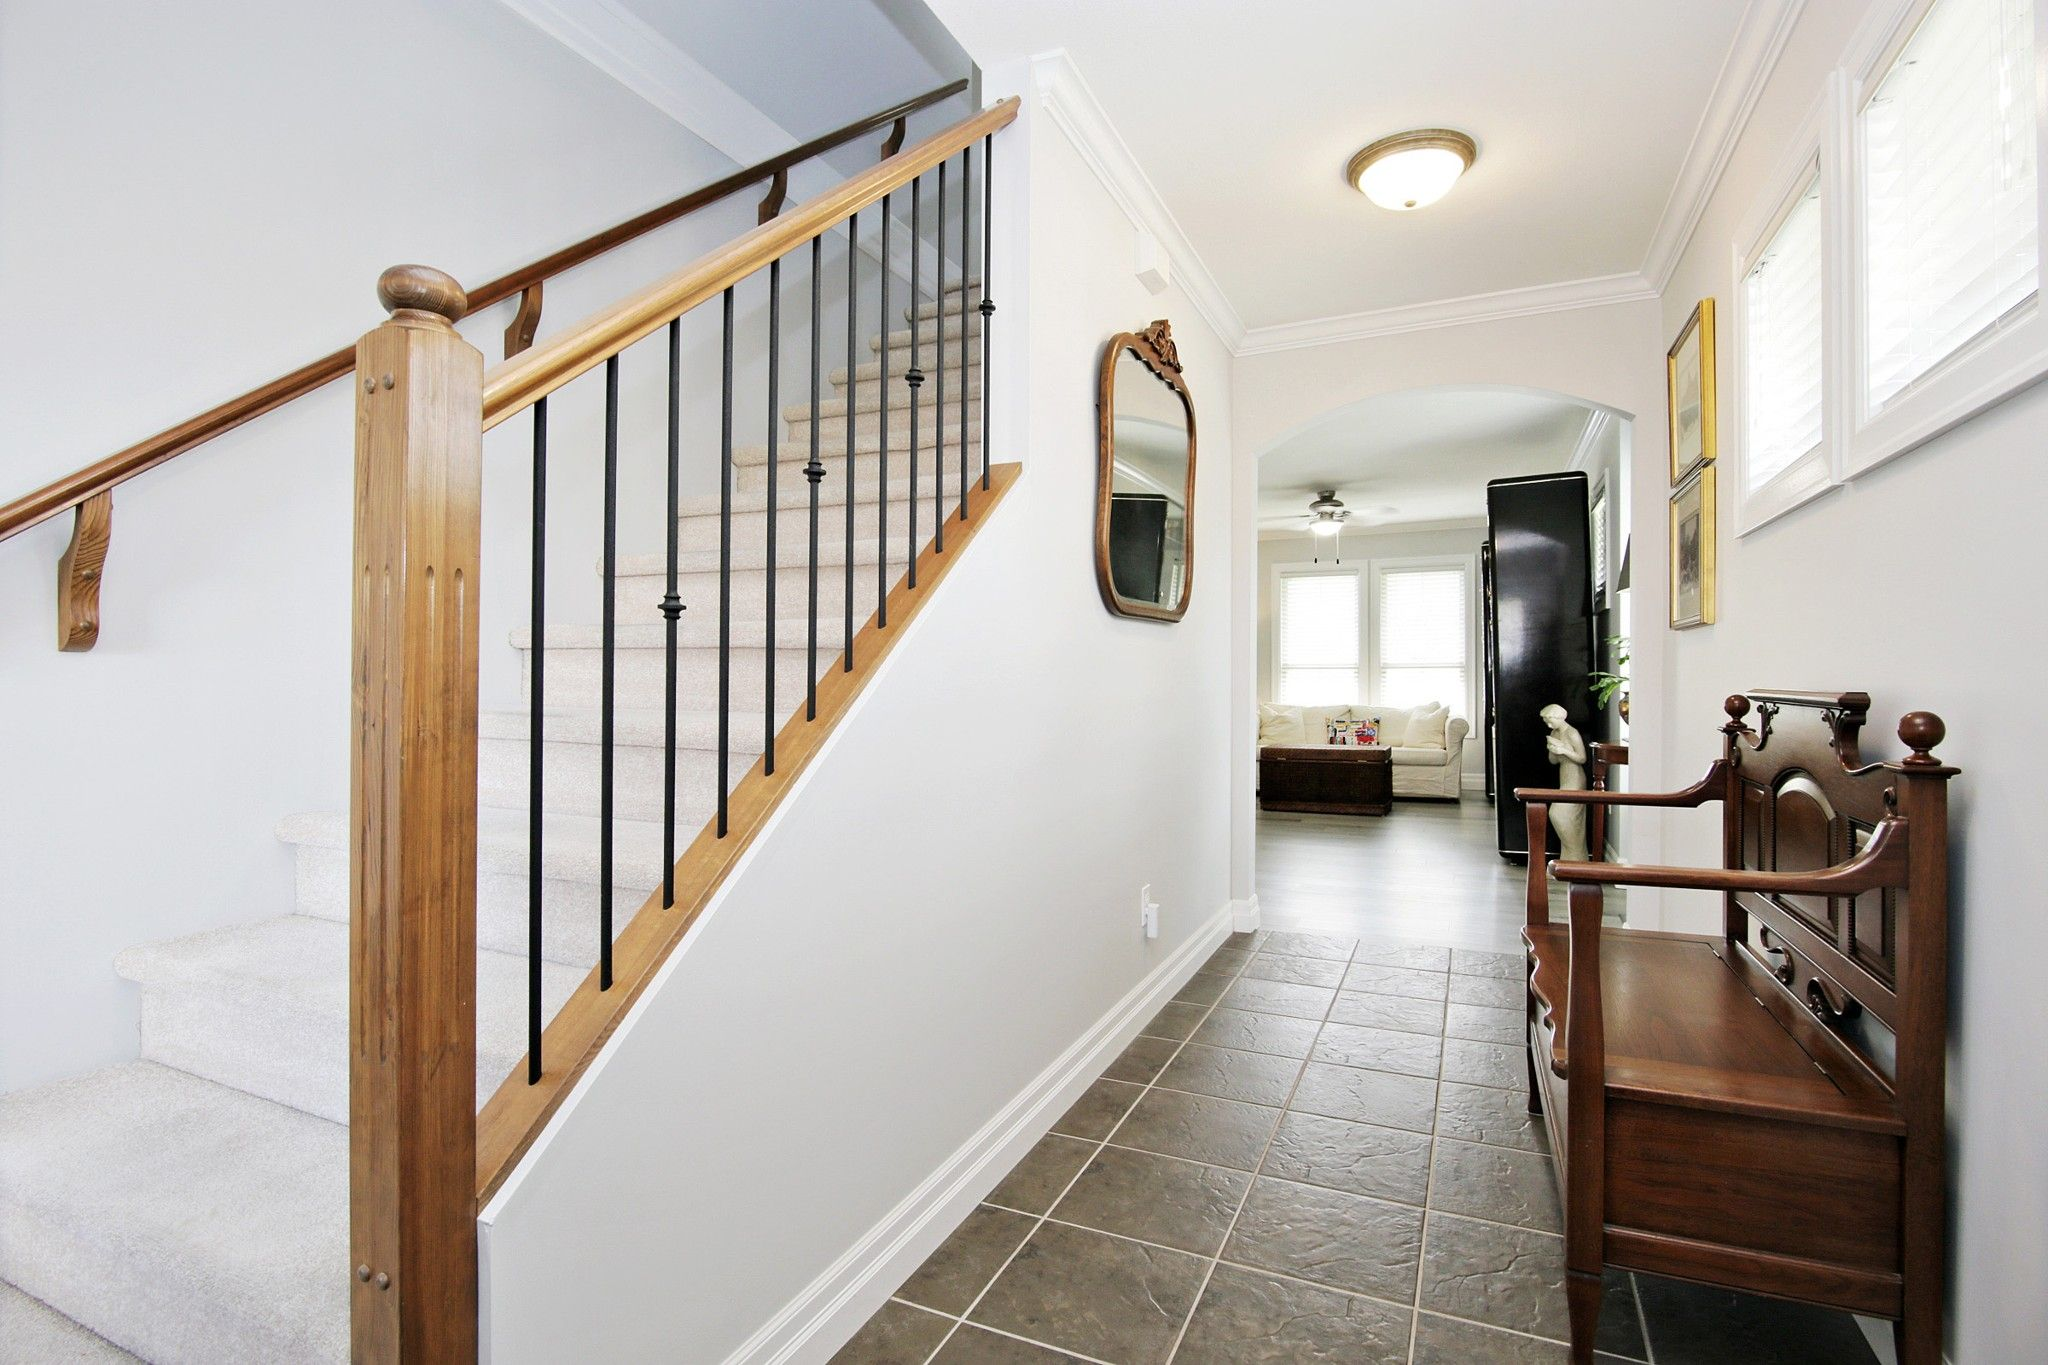 """Photo 4: Photos: 25 6450 BLACKWOOD Lane in Chilliwack: Sardis West Vedder Rd Townhouse for sale in """"THE MAPLES"""" (Sardis)  : MLS®# R2581381"""